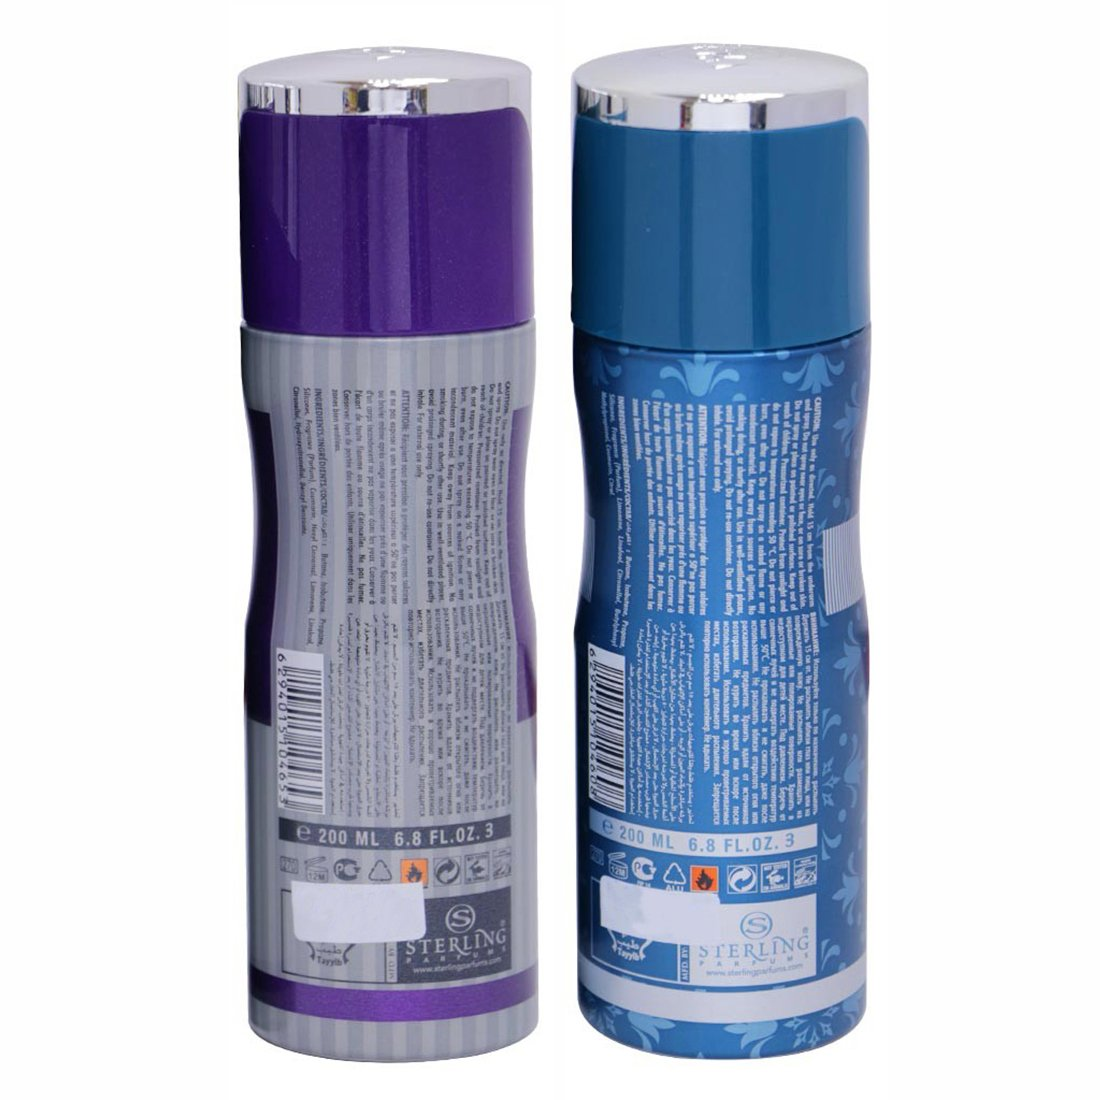 Tayyib Sehr Al Ayoon & Mozhela Non Alcoholic Deodorant Combo Pack of 2 x 200 ml